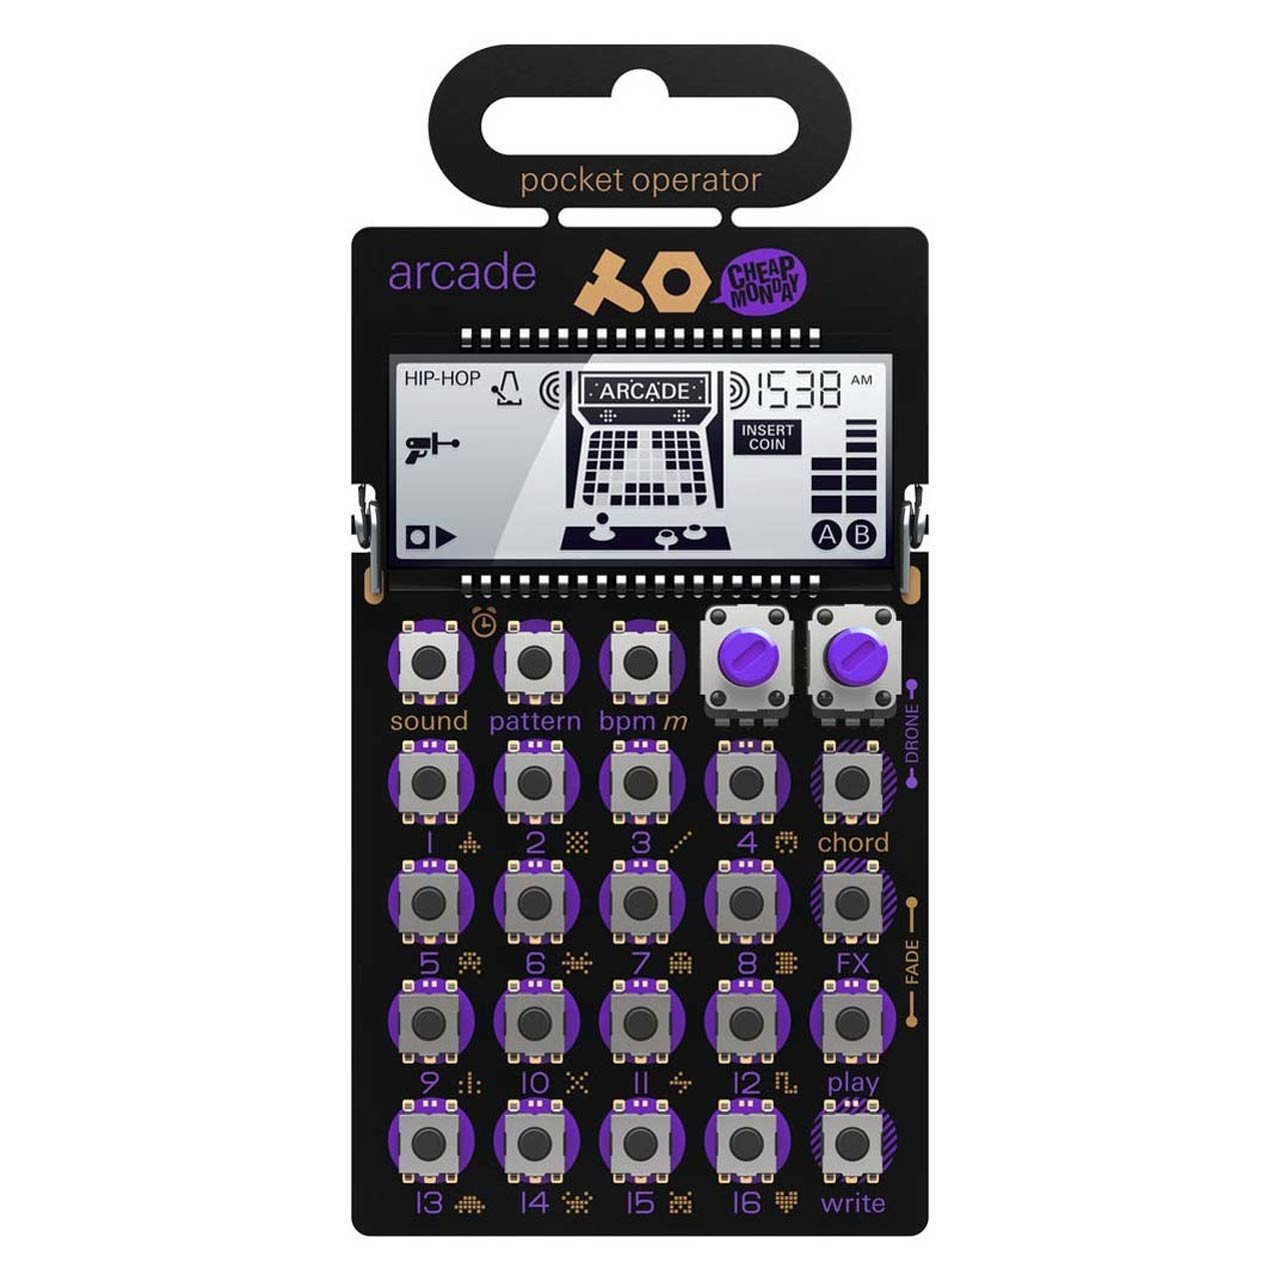 Desktop Synthesizers - Teenage Engineering PO-20 Arcade Pocket Operator